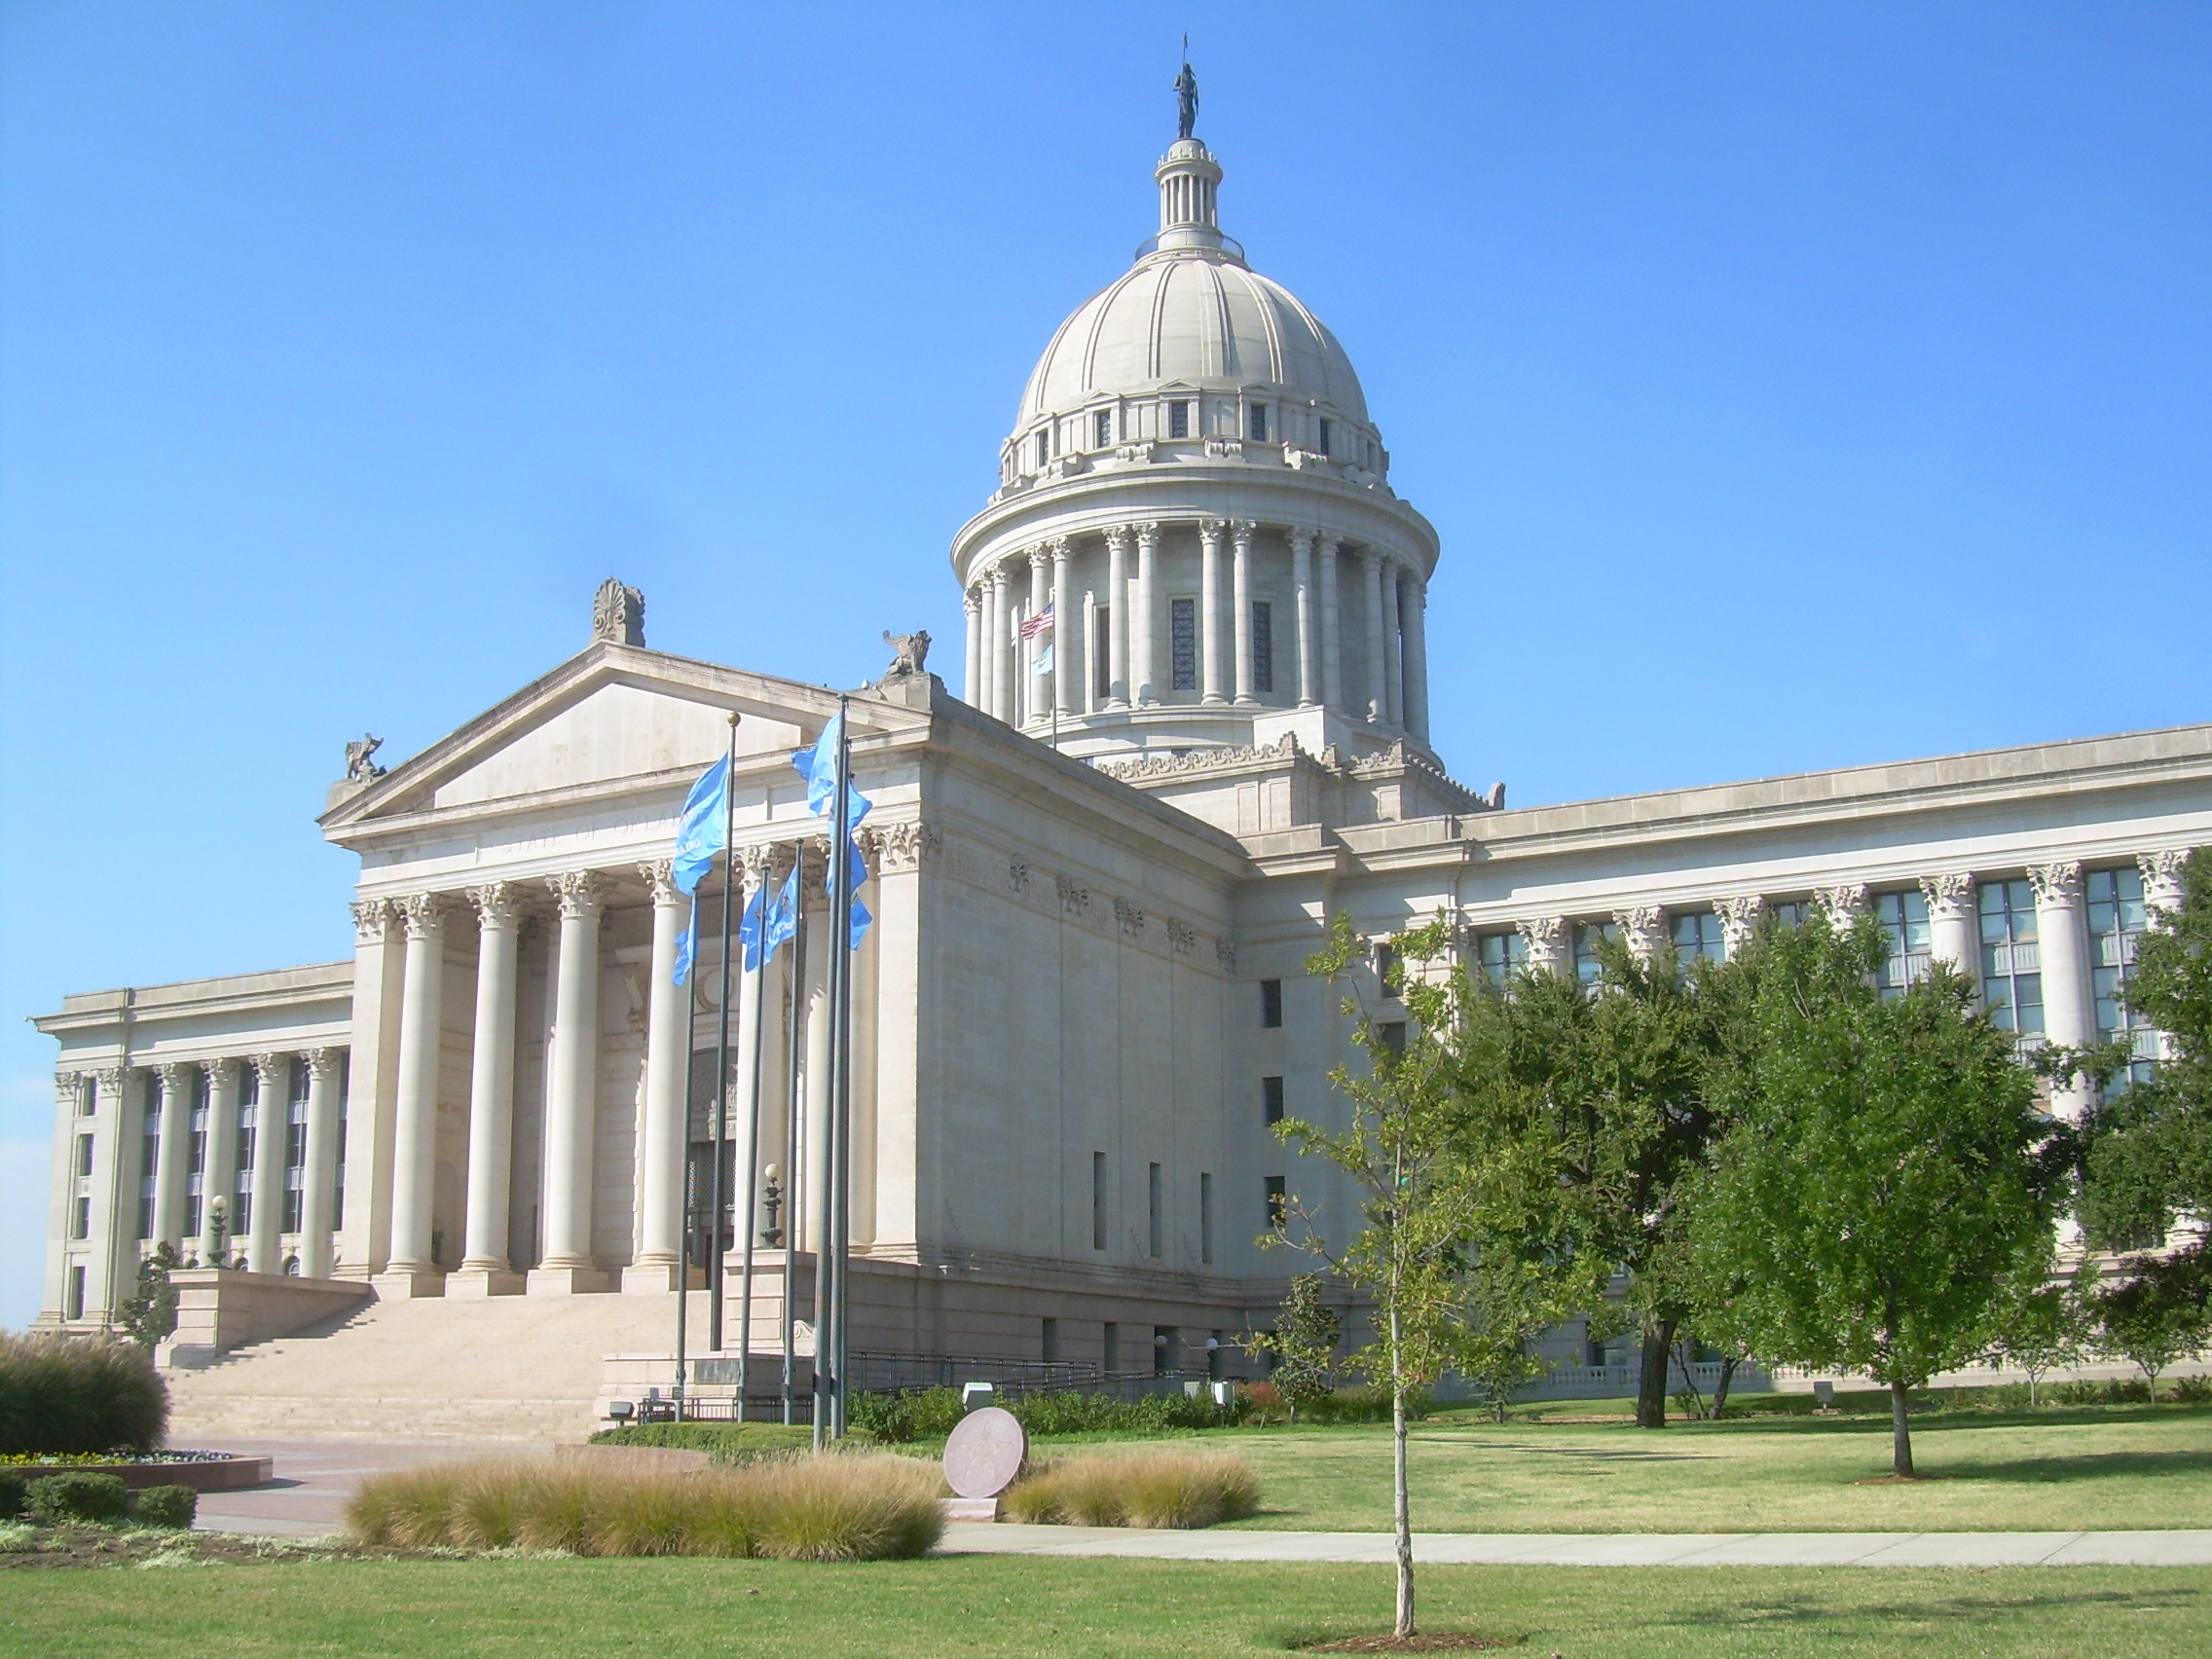 The Oklahoma State Capitol located in Oklahoma City.